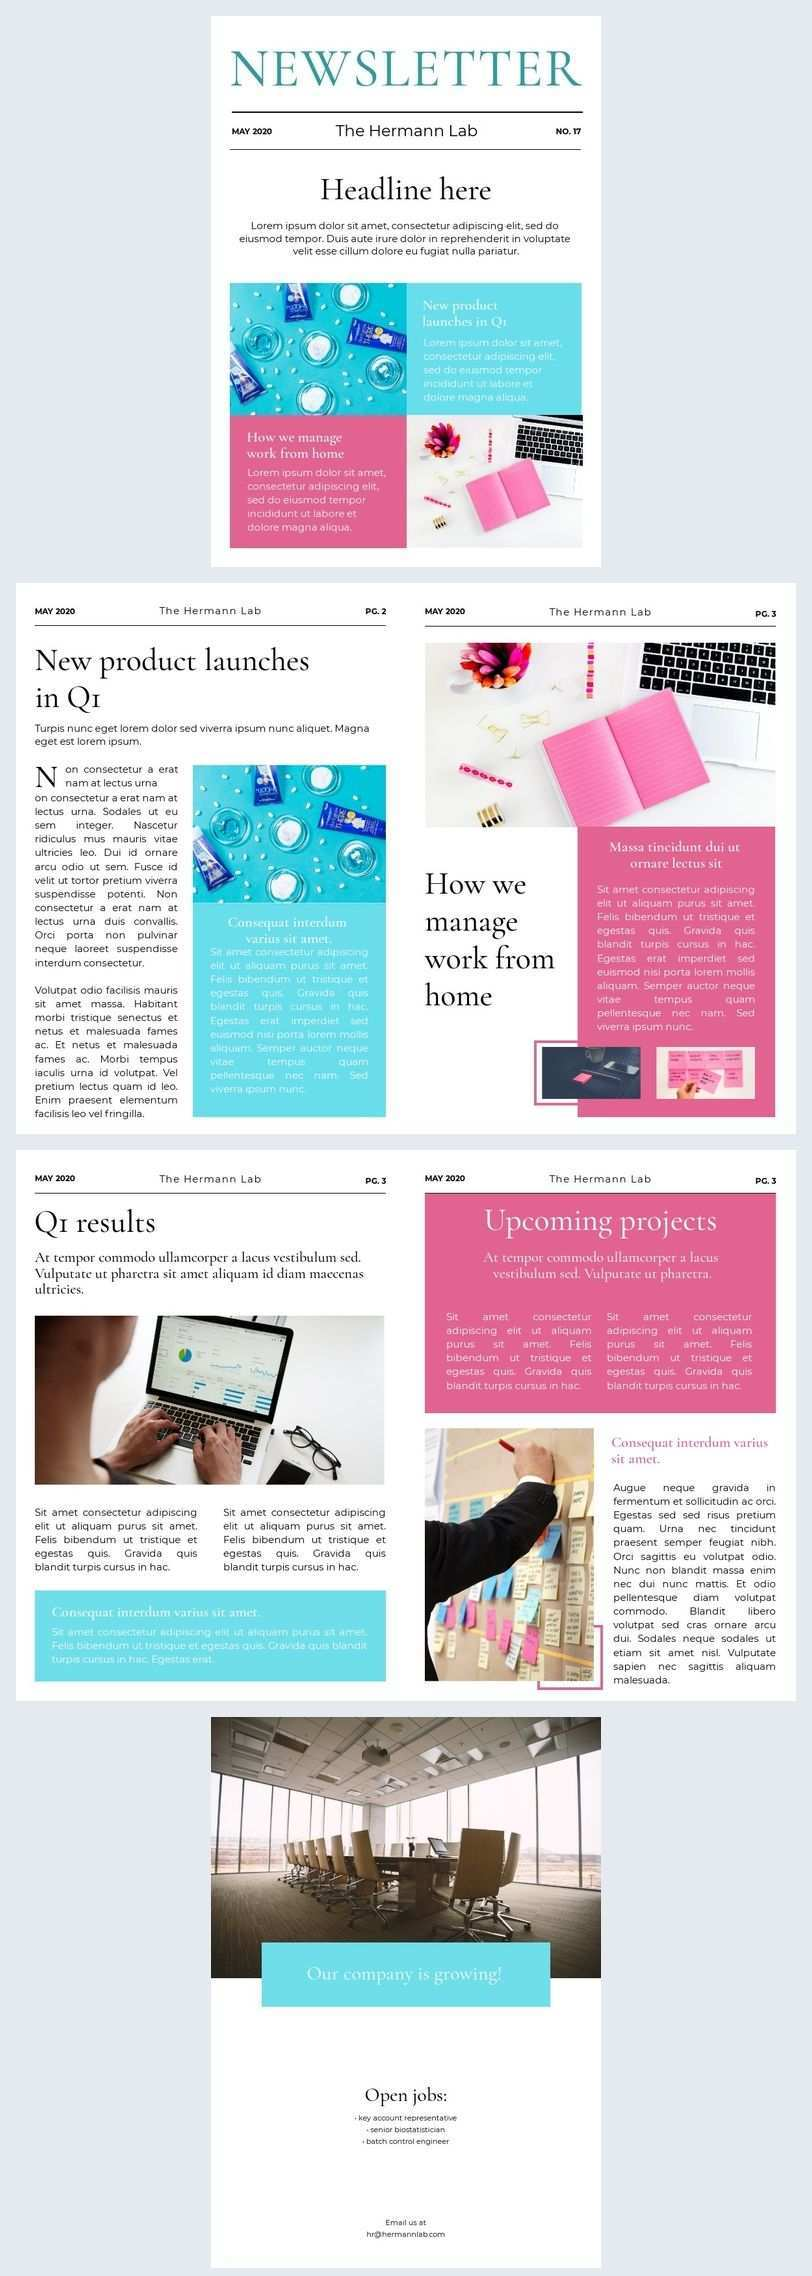 Company Newsletter Template In 2020 Newsletter Templates Company Newsletter Newsletter Design